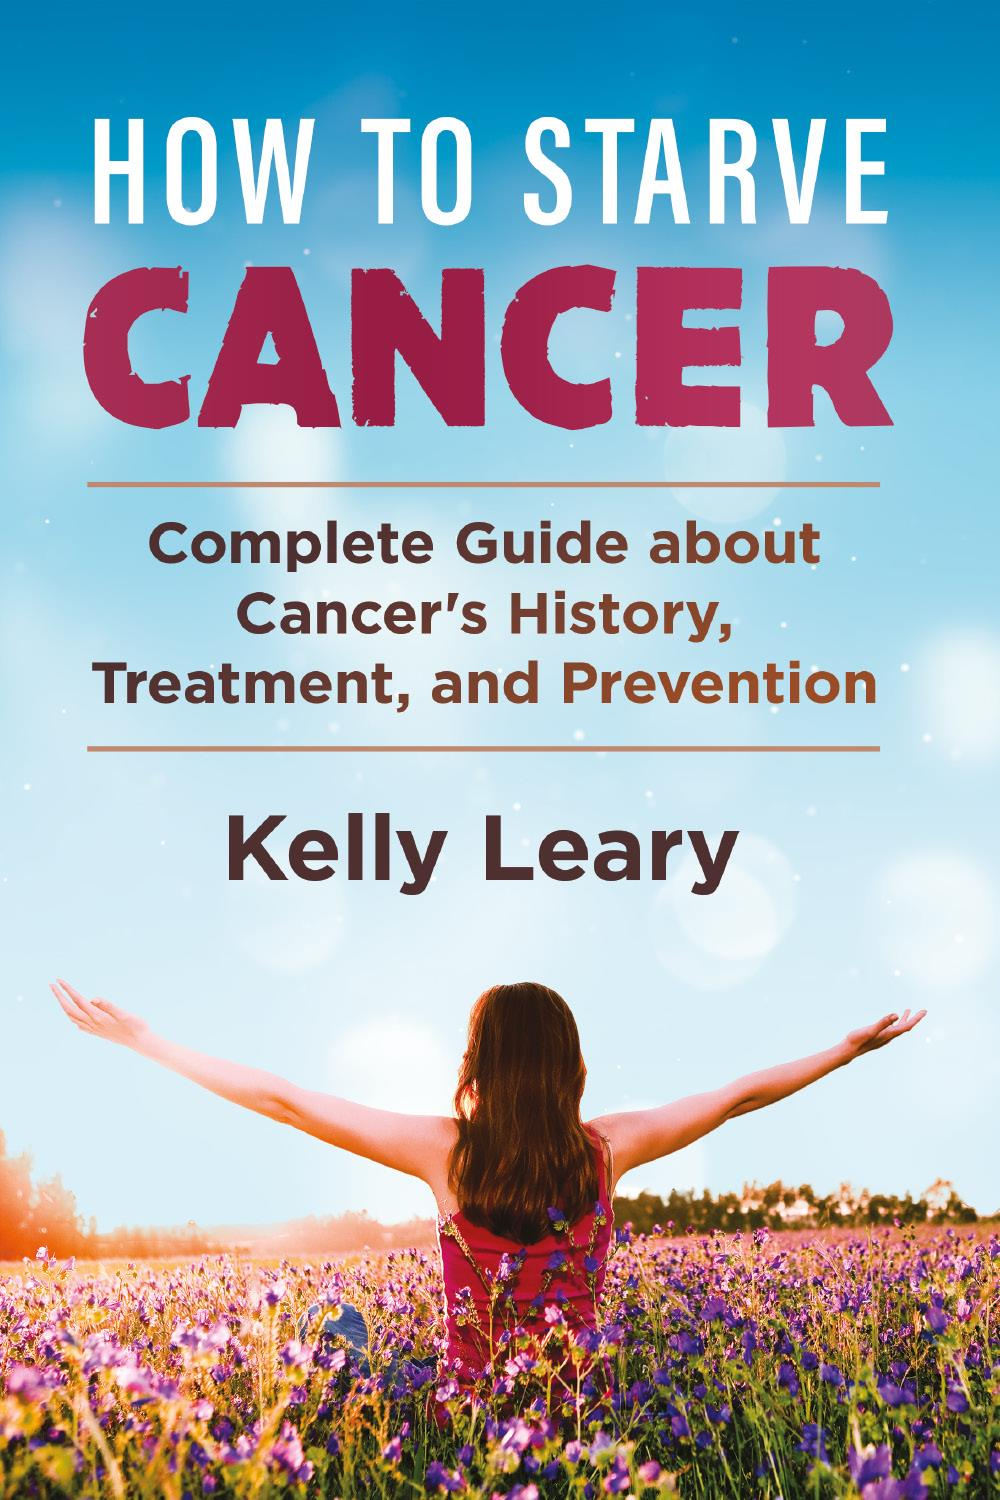 How to starve cancer. Complete Guide about Cancer's History, Treatment, and Prevention